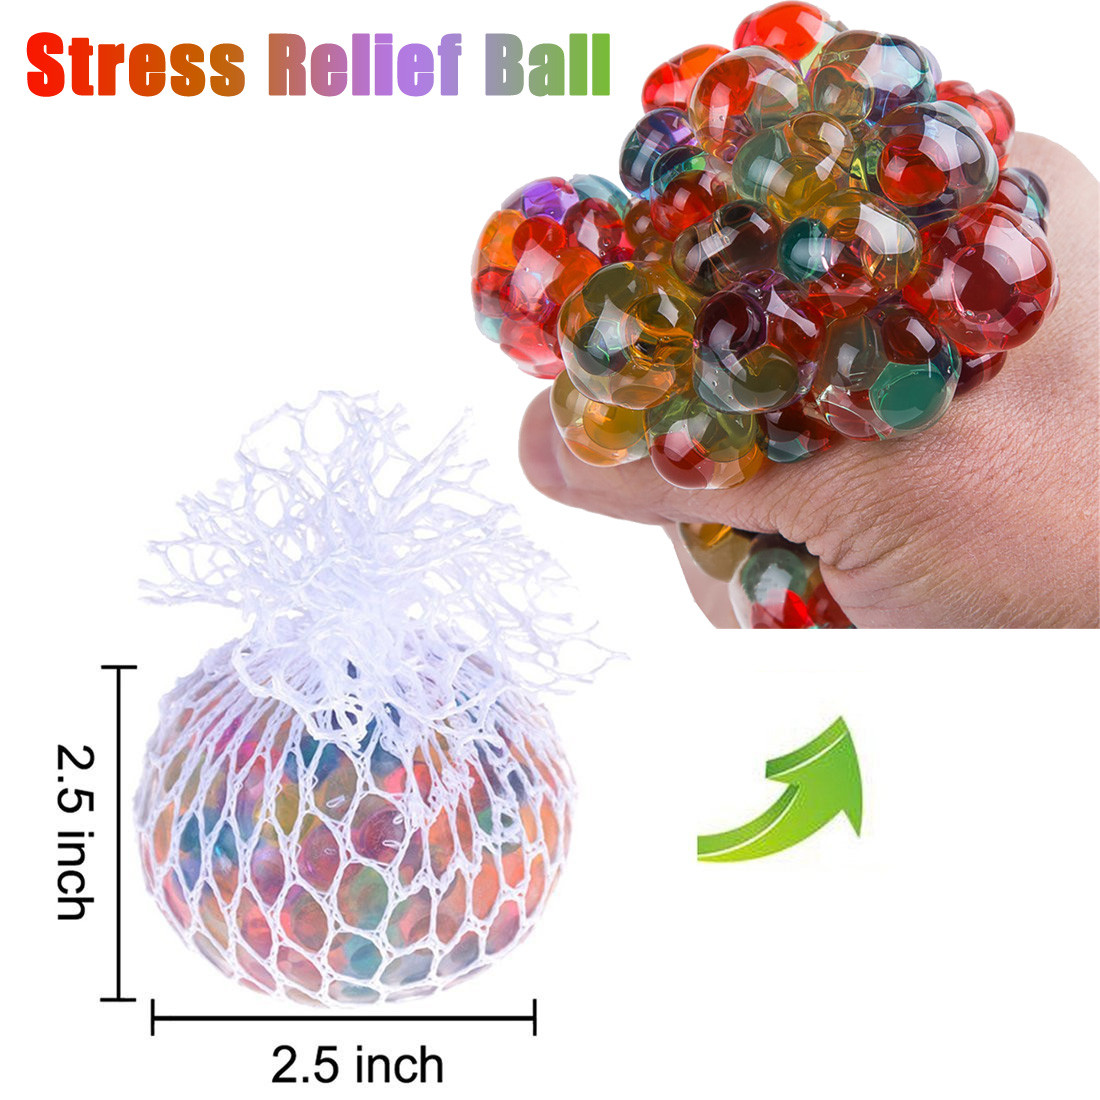 Decorative-Ornaments Grape-Toys Ball-Stress Mesh Rainbow Squeeze Anxiety Relief Glowing img3